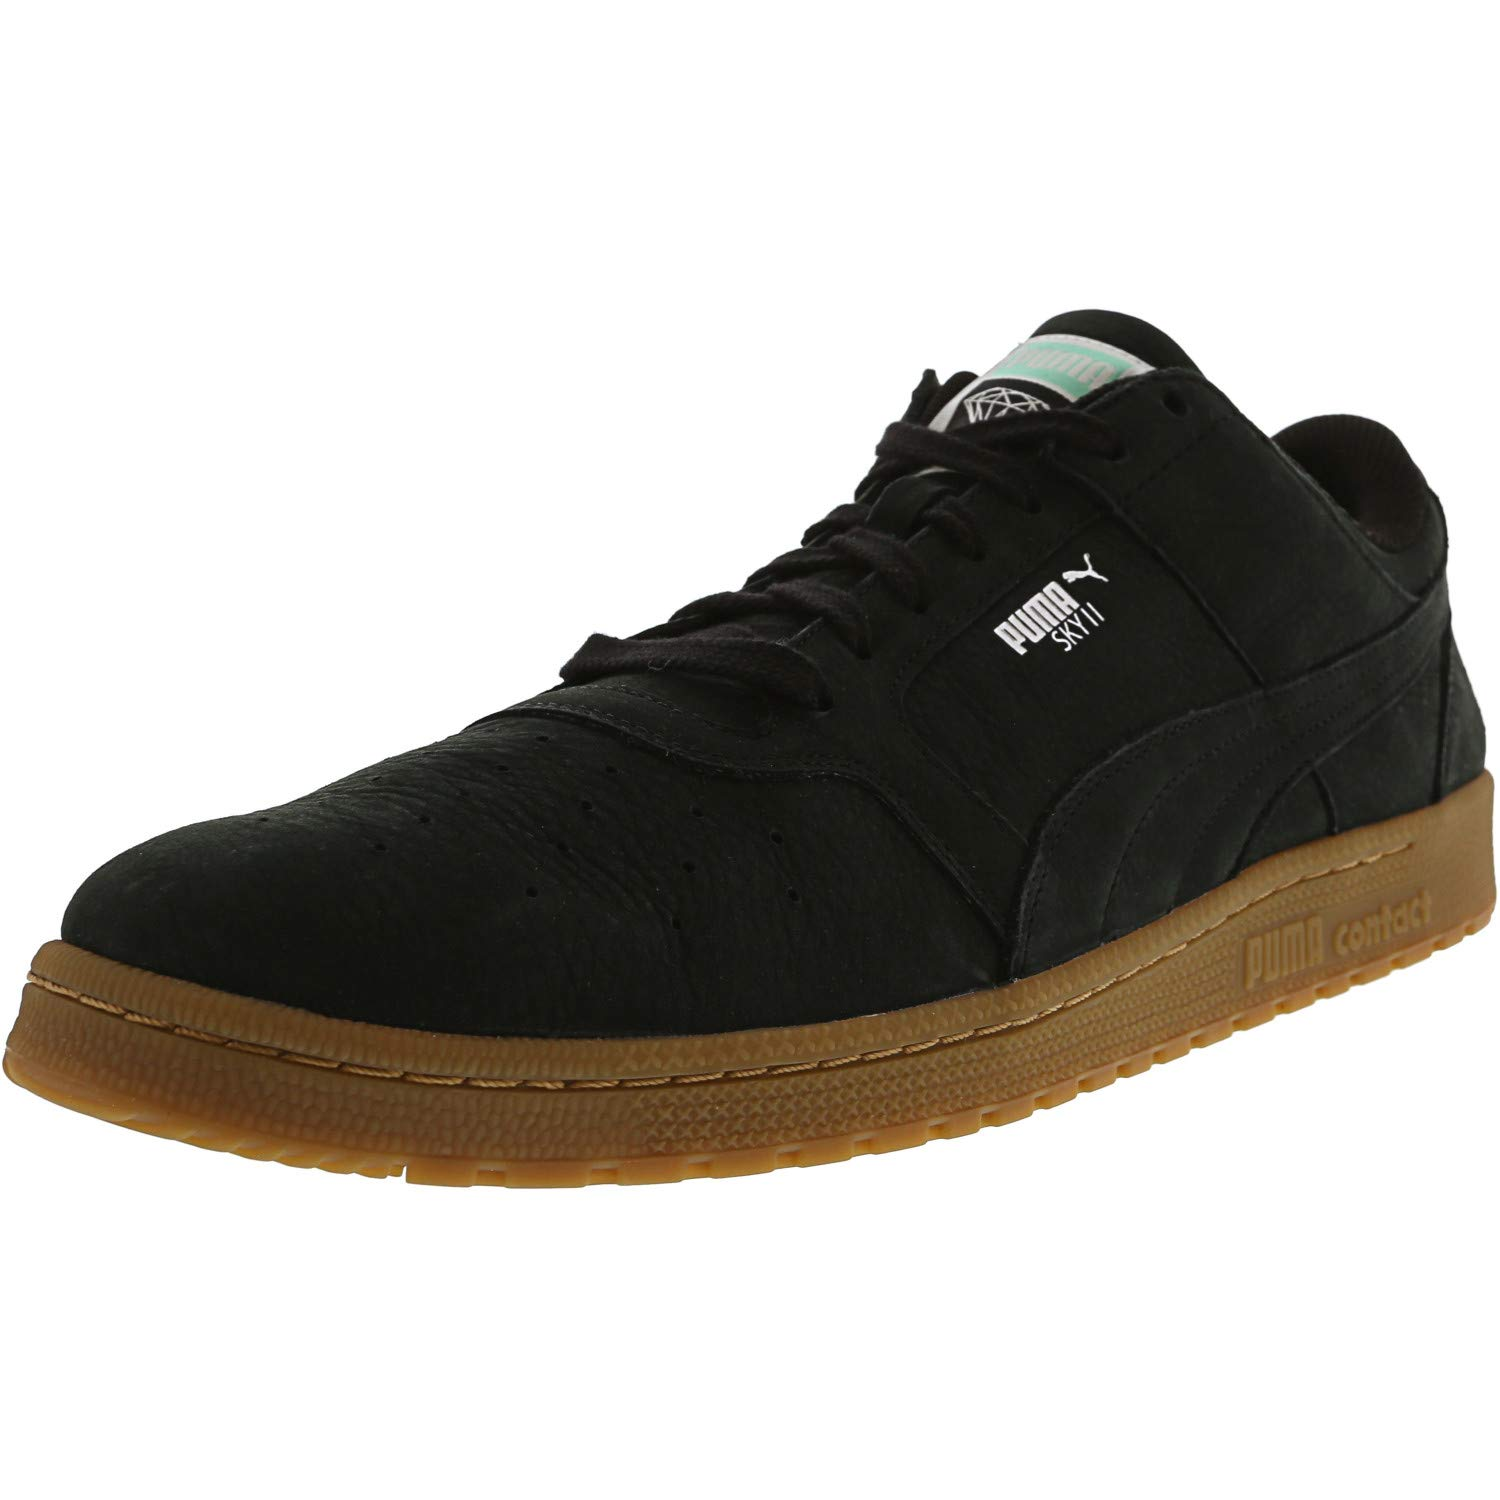 sports shoes 19c4c 44b83 Amazon.com | PUMA Men's Sky Ii Lo Diamond Ankle-High Suede ...